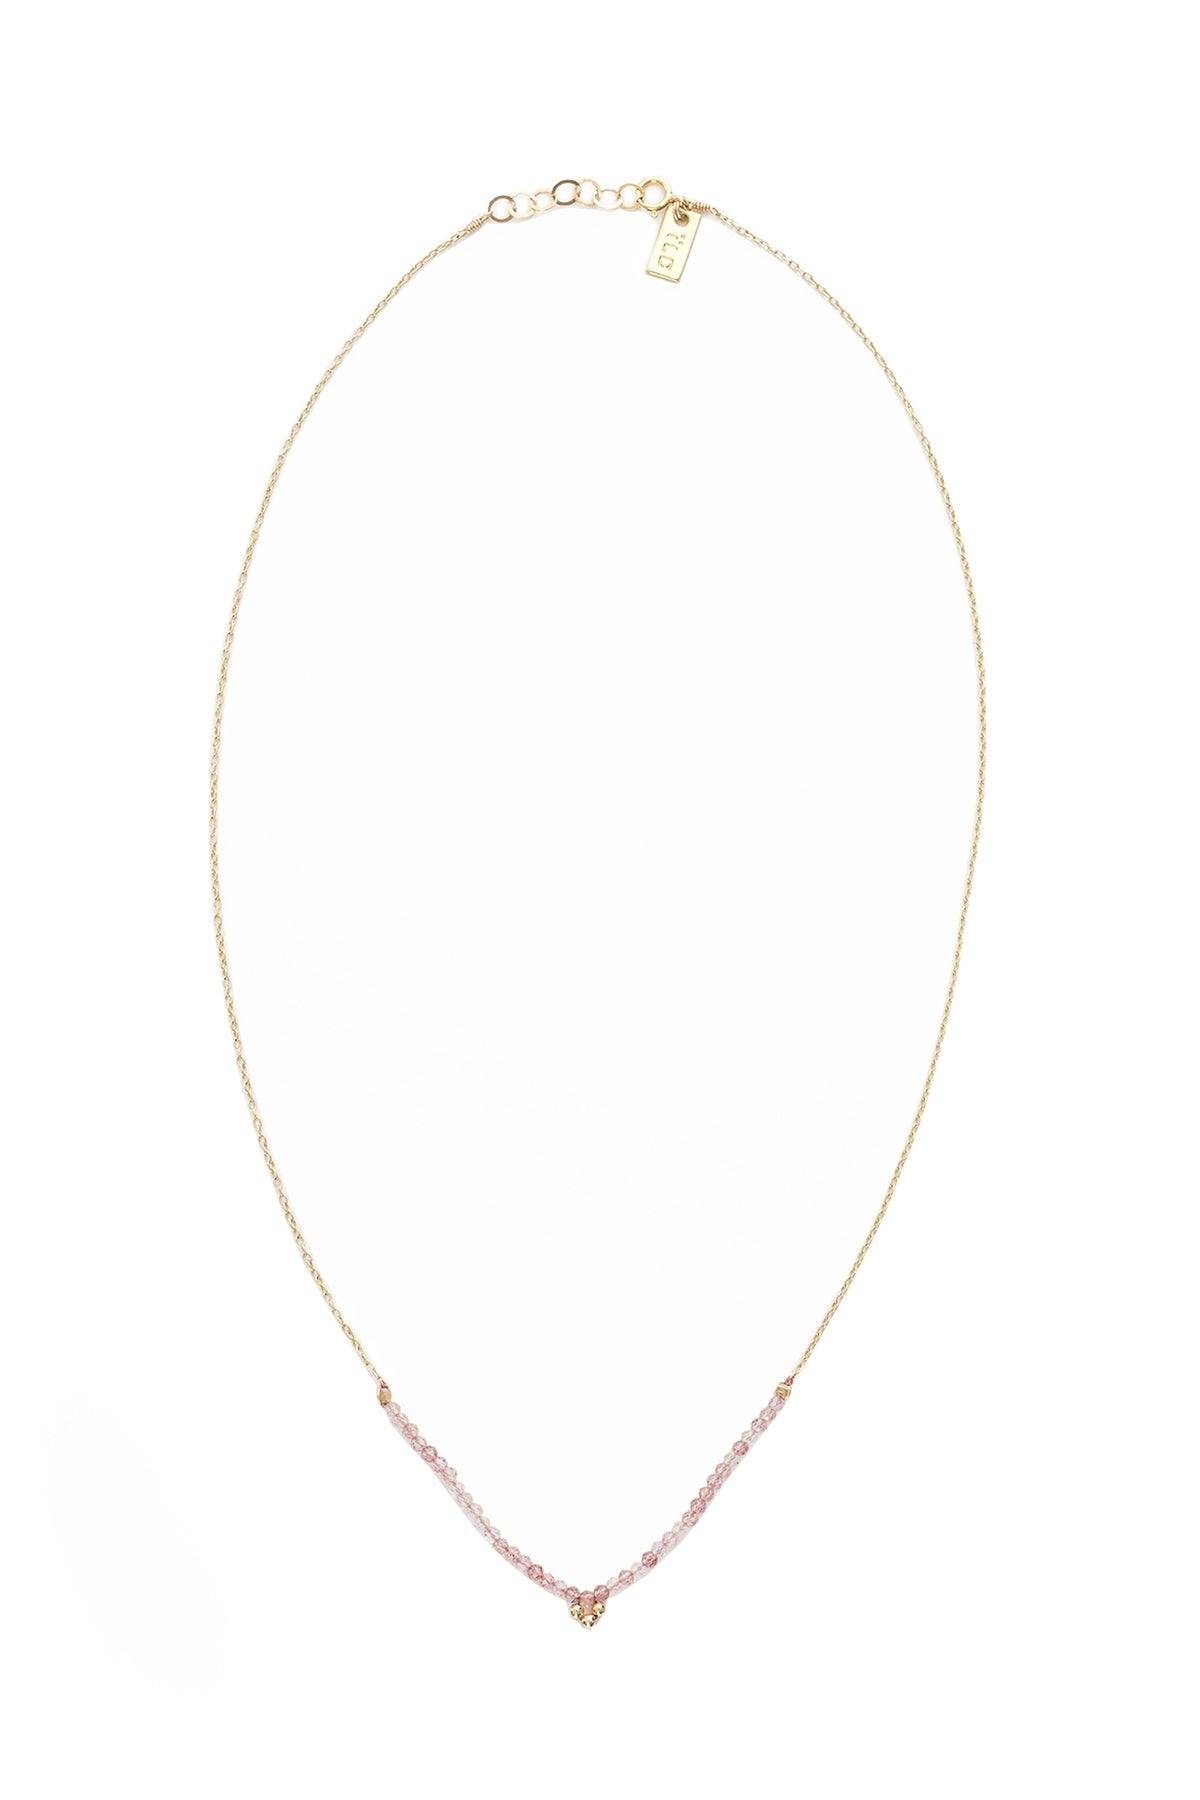 DRIFT FLOWER STRAWBERRY QUARTZ NECKLACE BY ILD